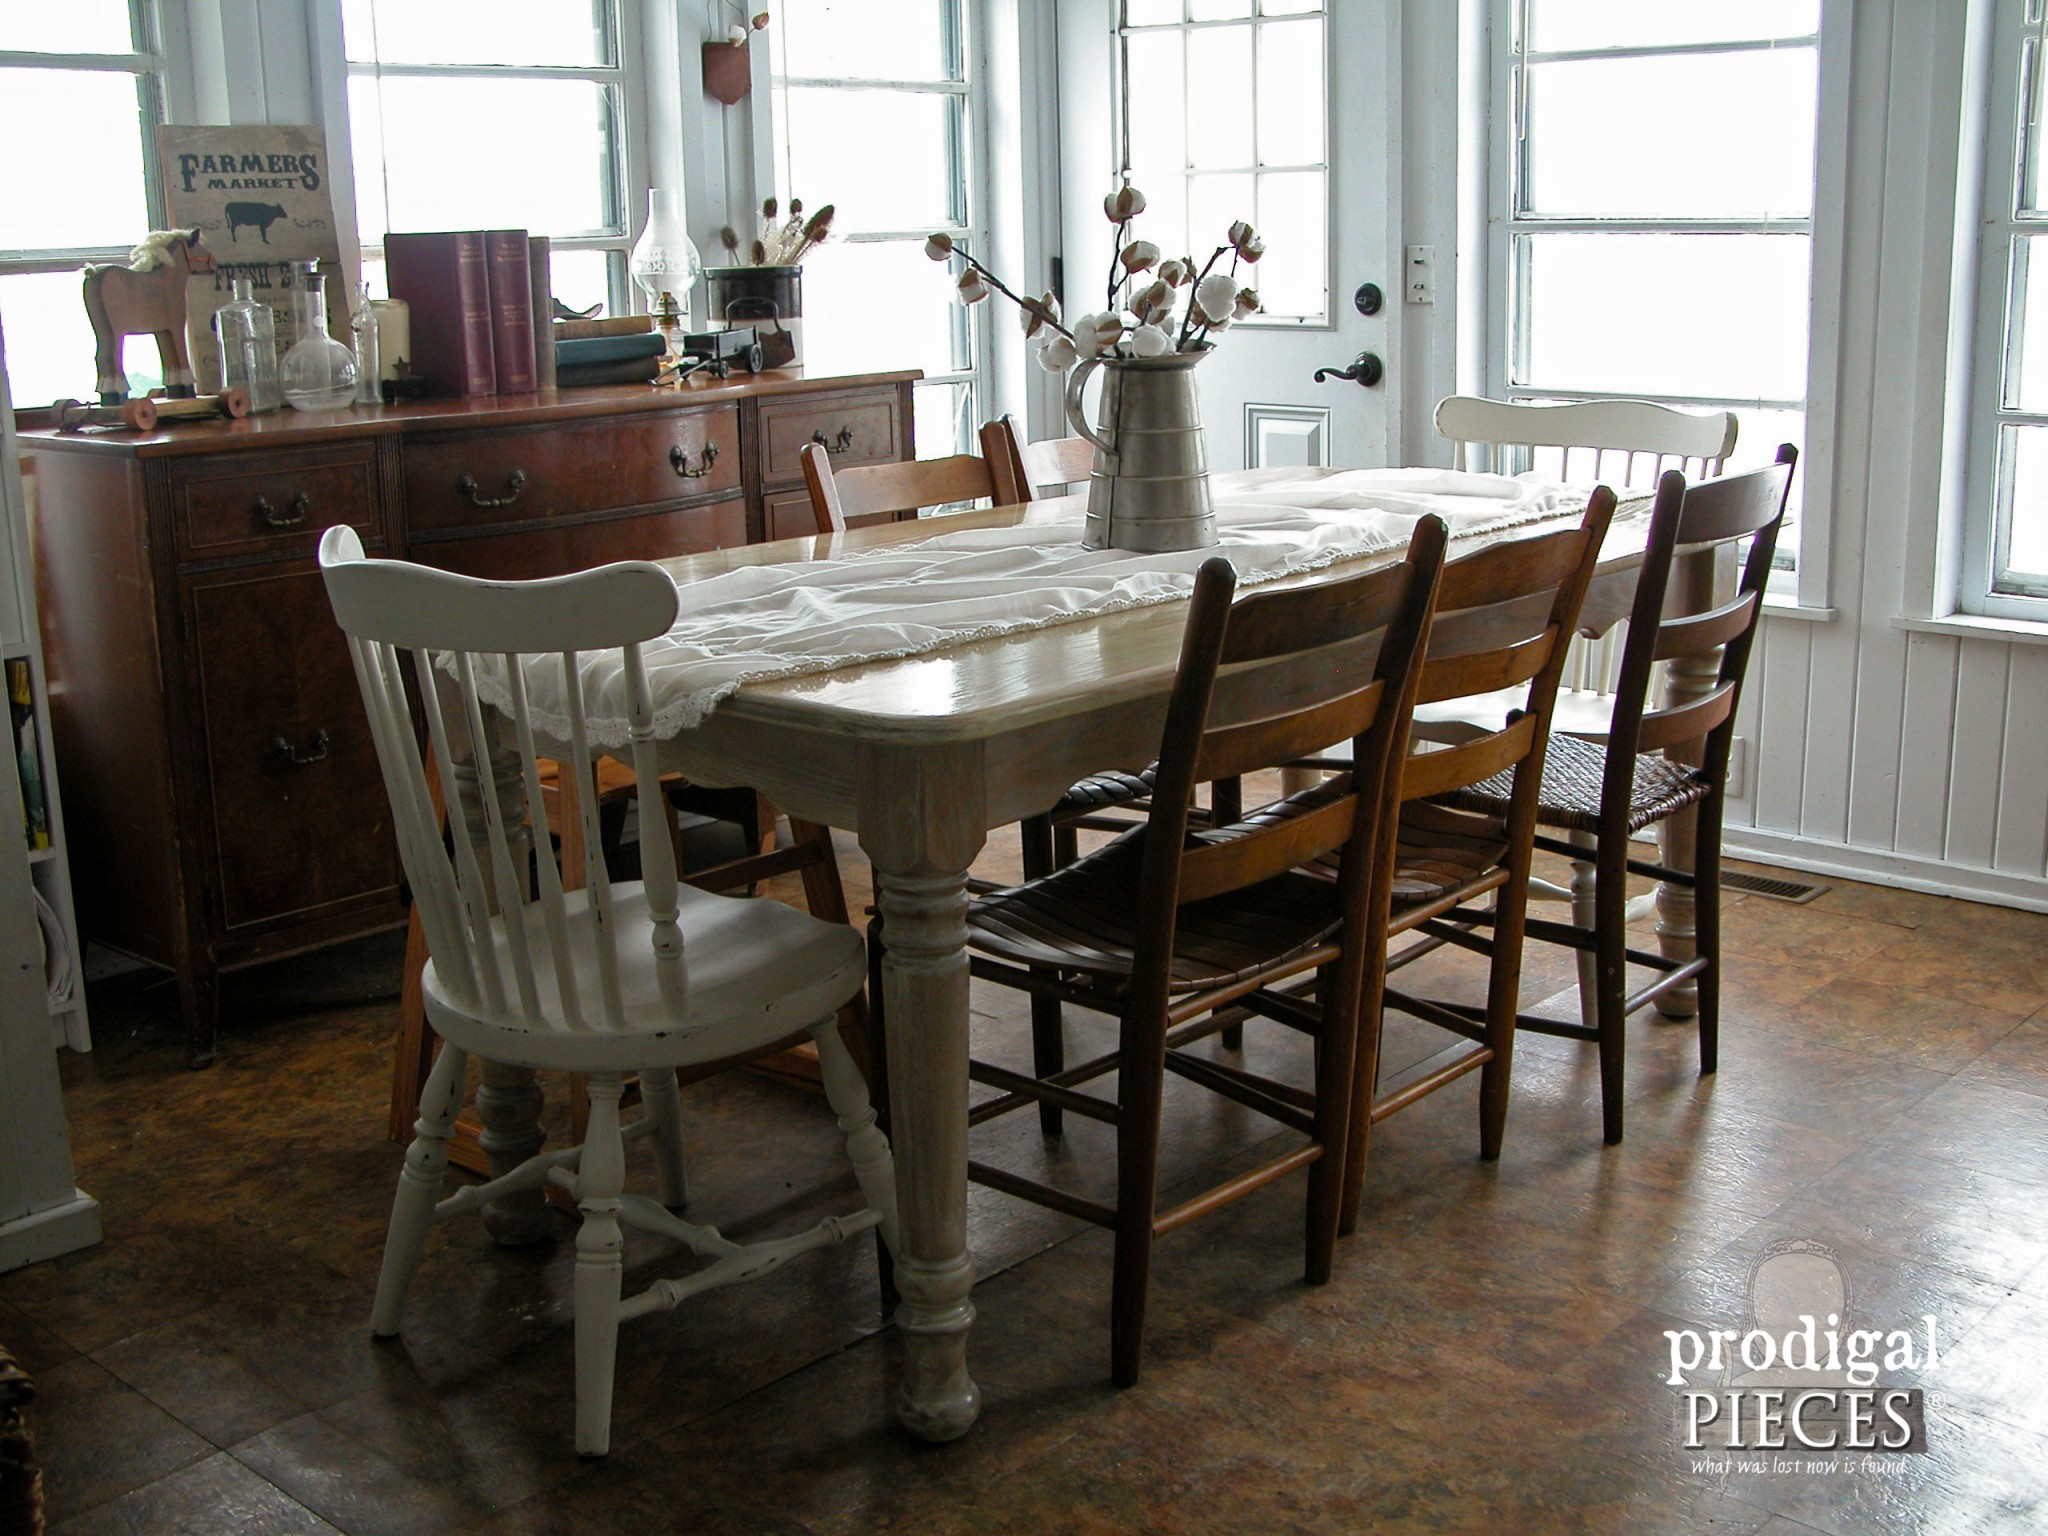 Inspirational Whitewashed or Limewashed Farmhouse Table by Prodigal Pieces prodigalpieces